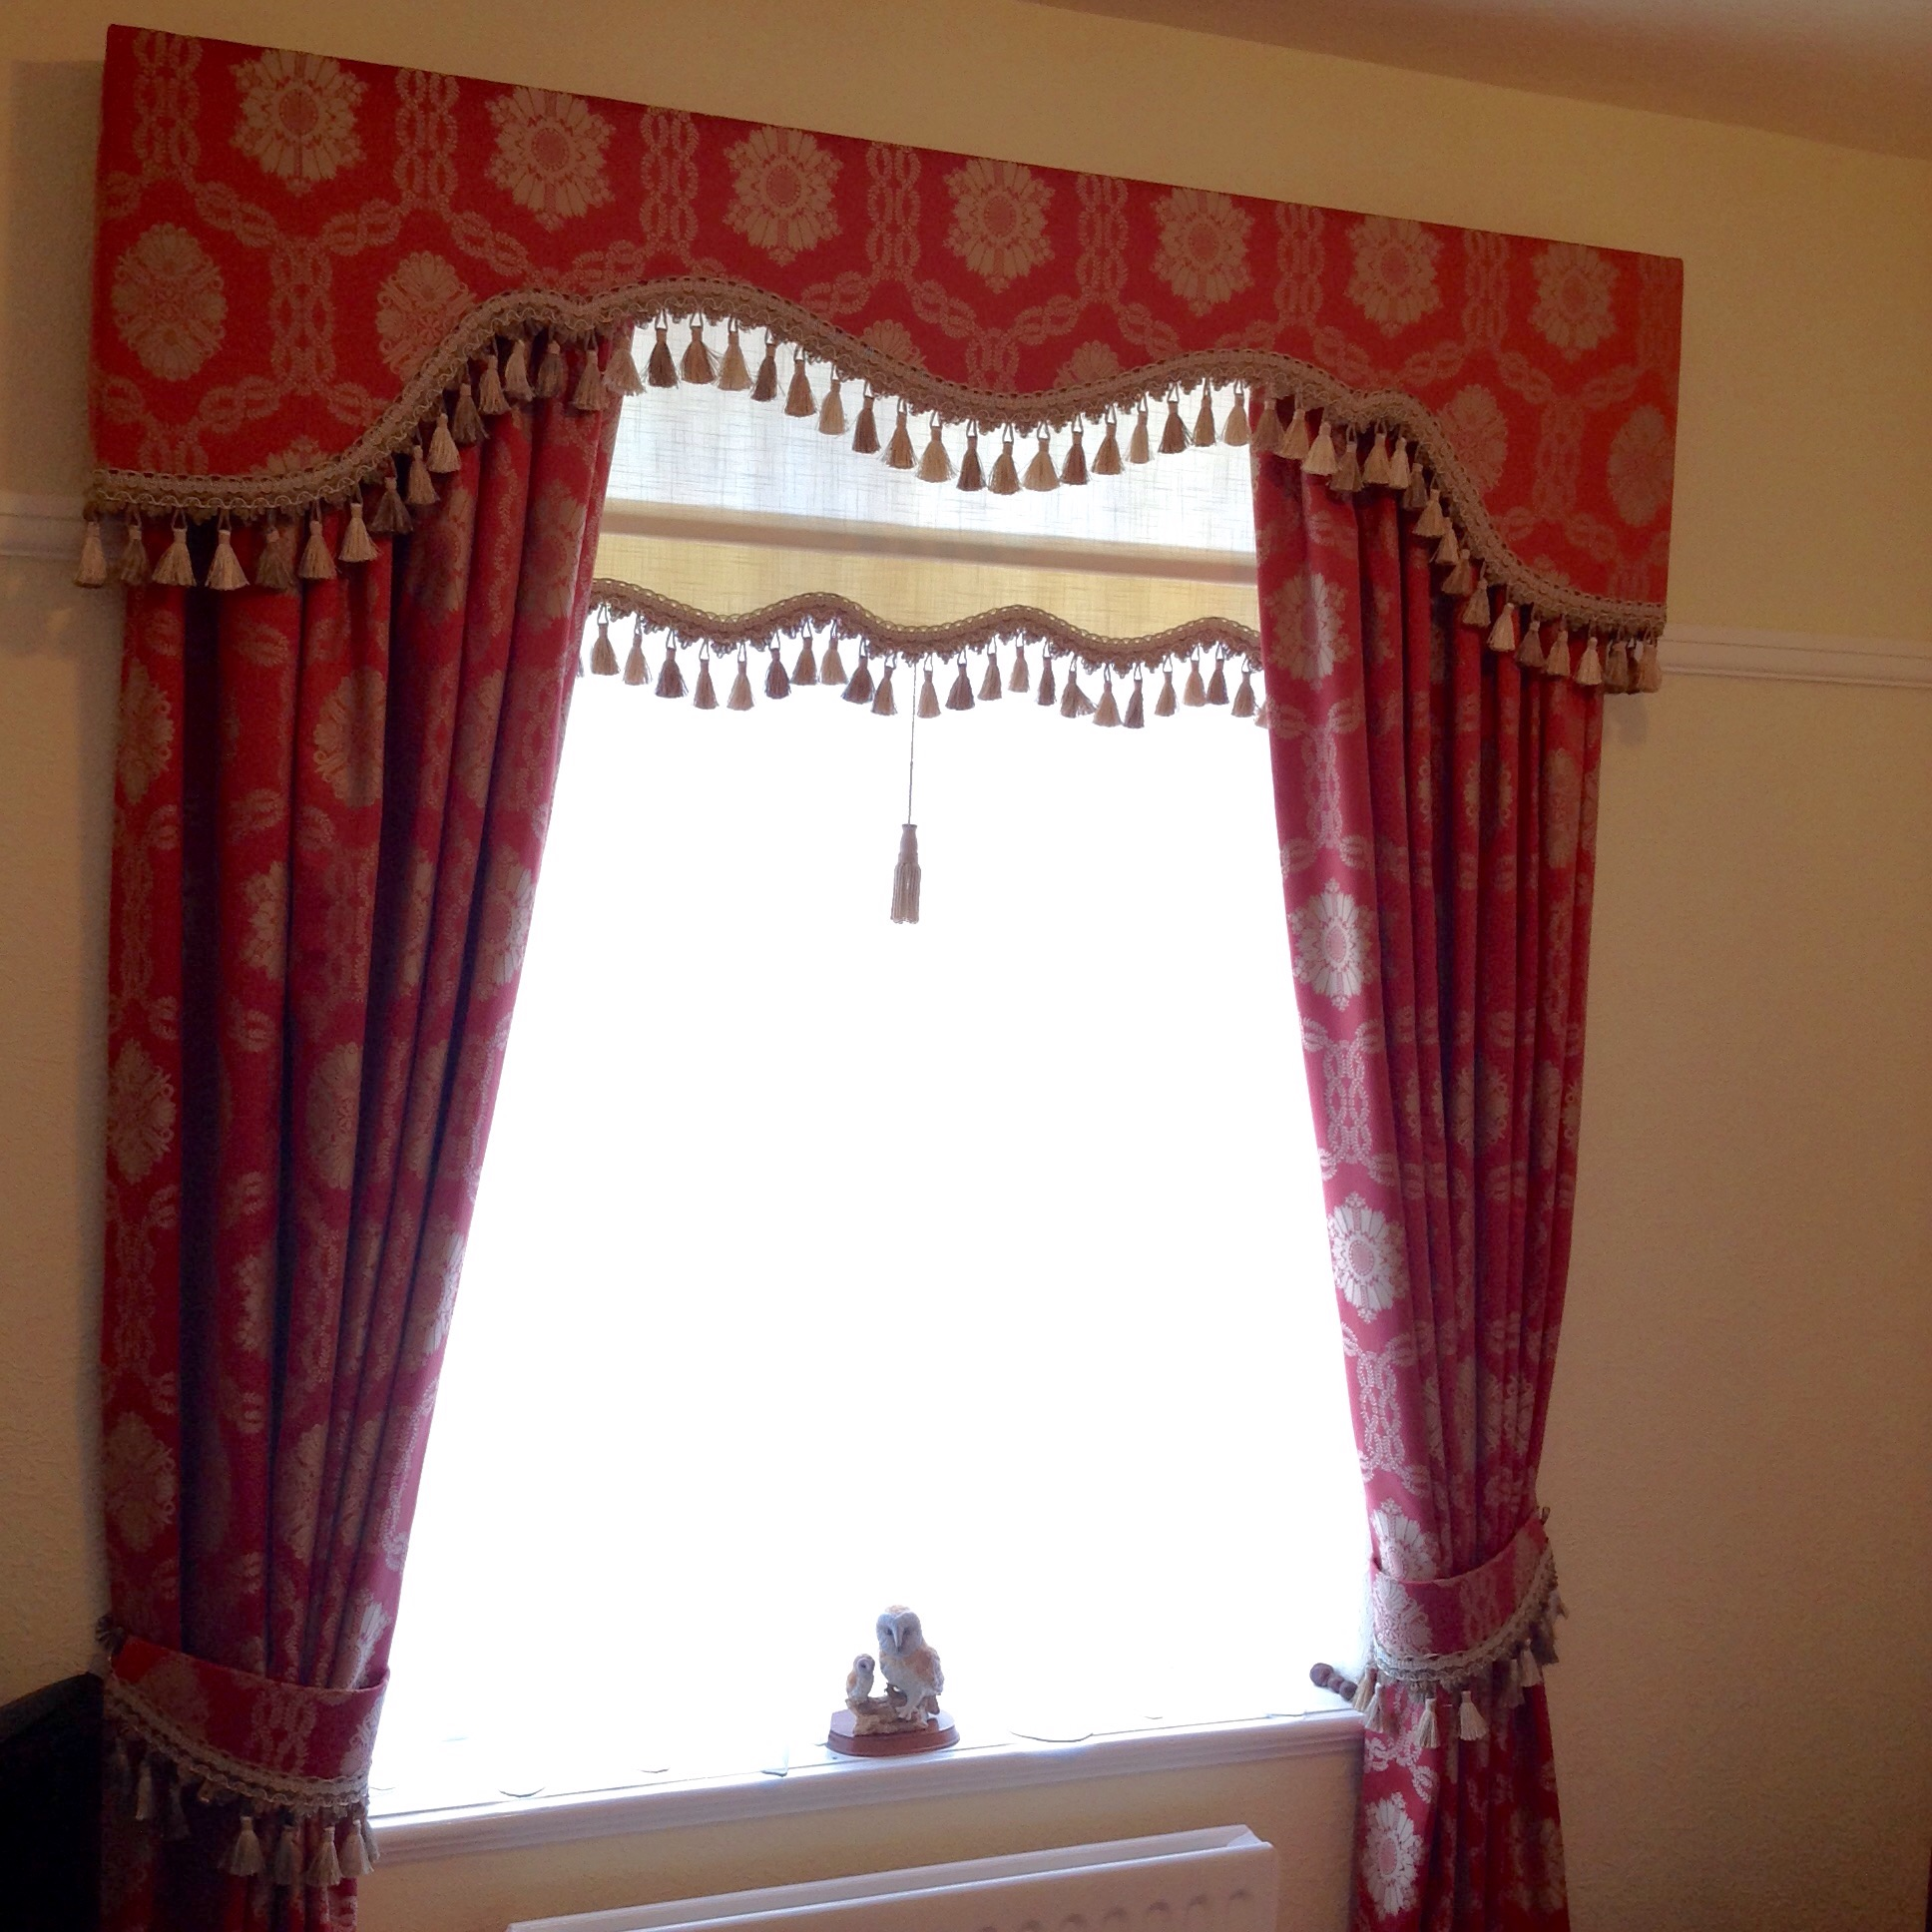 Roller blind & tie backs trimmed to match.